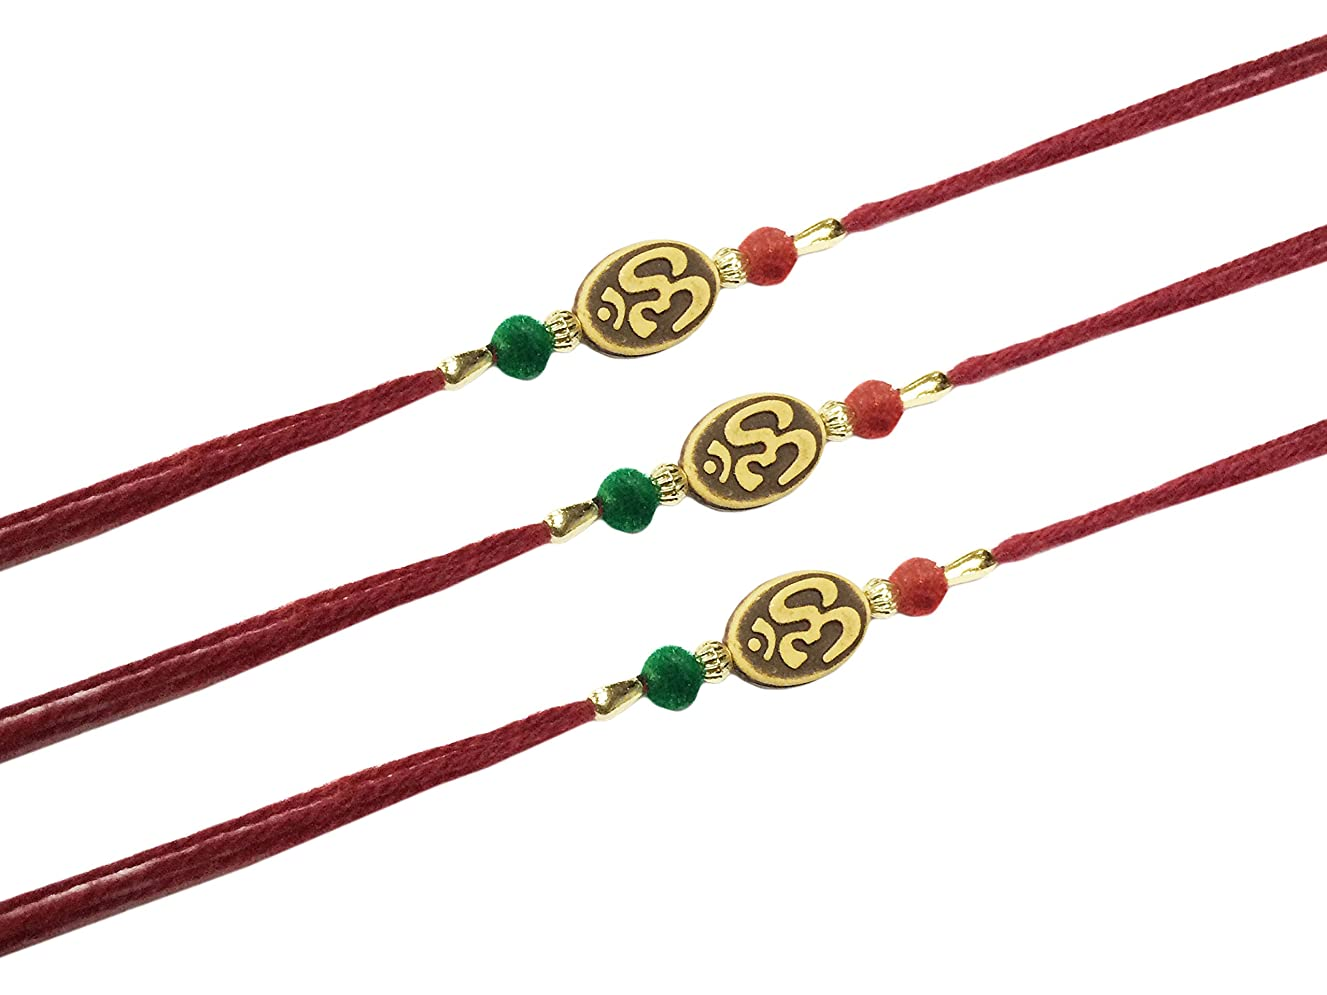 Set of Three, Om Design, Rakhi Thread, Raksha bandhan Gift for Your Brother Vary Color and Multi Design